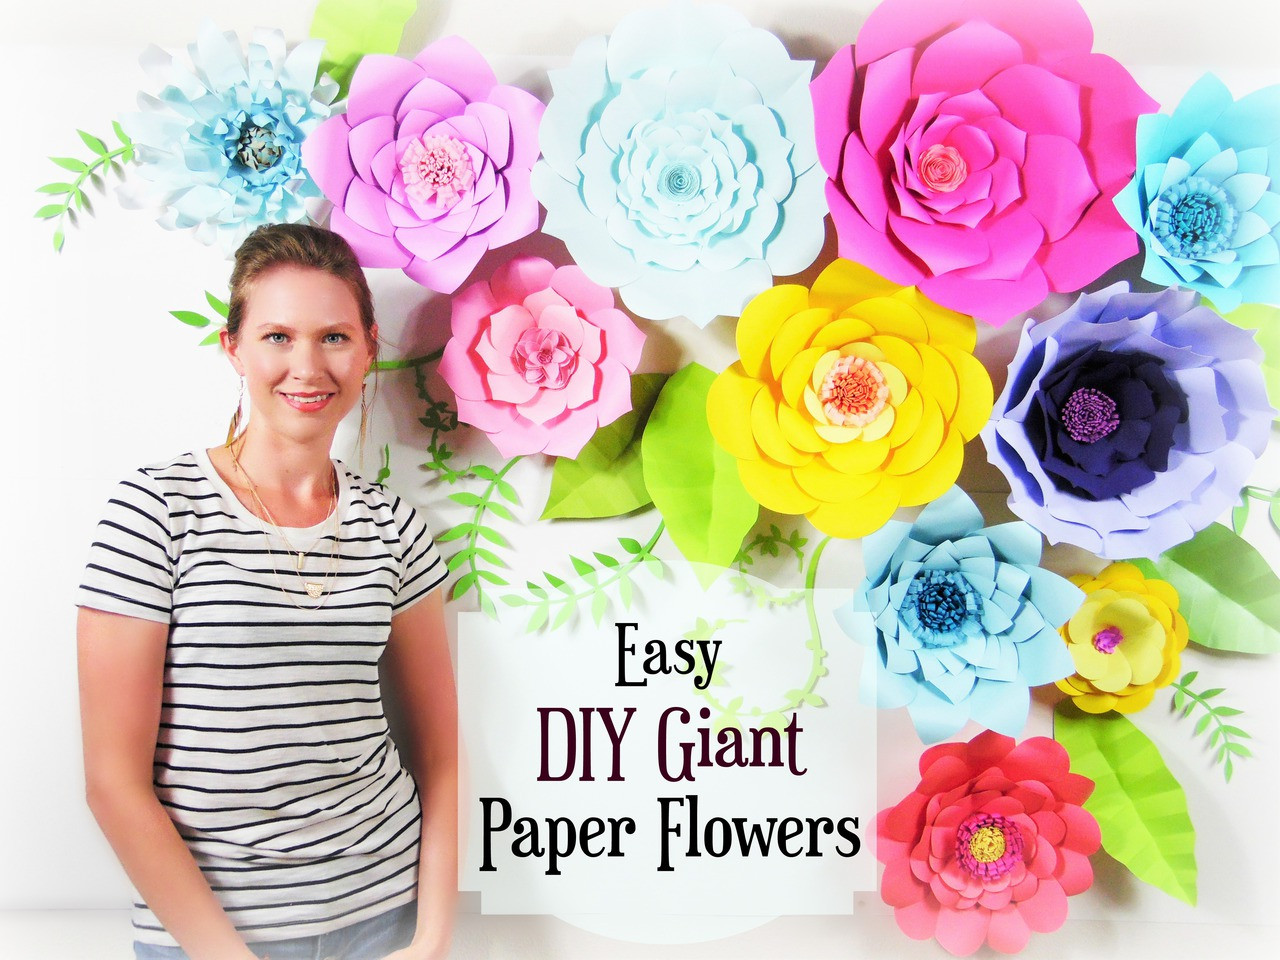 Set of 5 giant flower templates diy paper flower wall catching set of 5 giant flower templates diy paper flower wall catching colorflies mightylinksfo